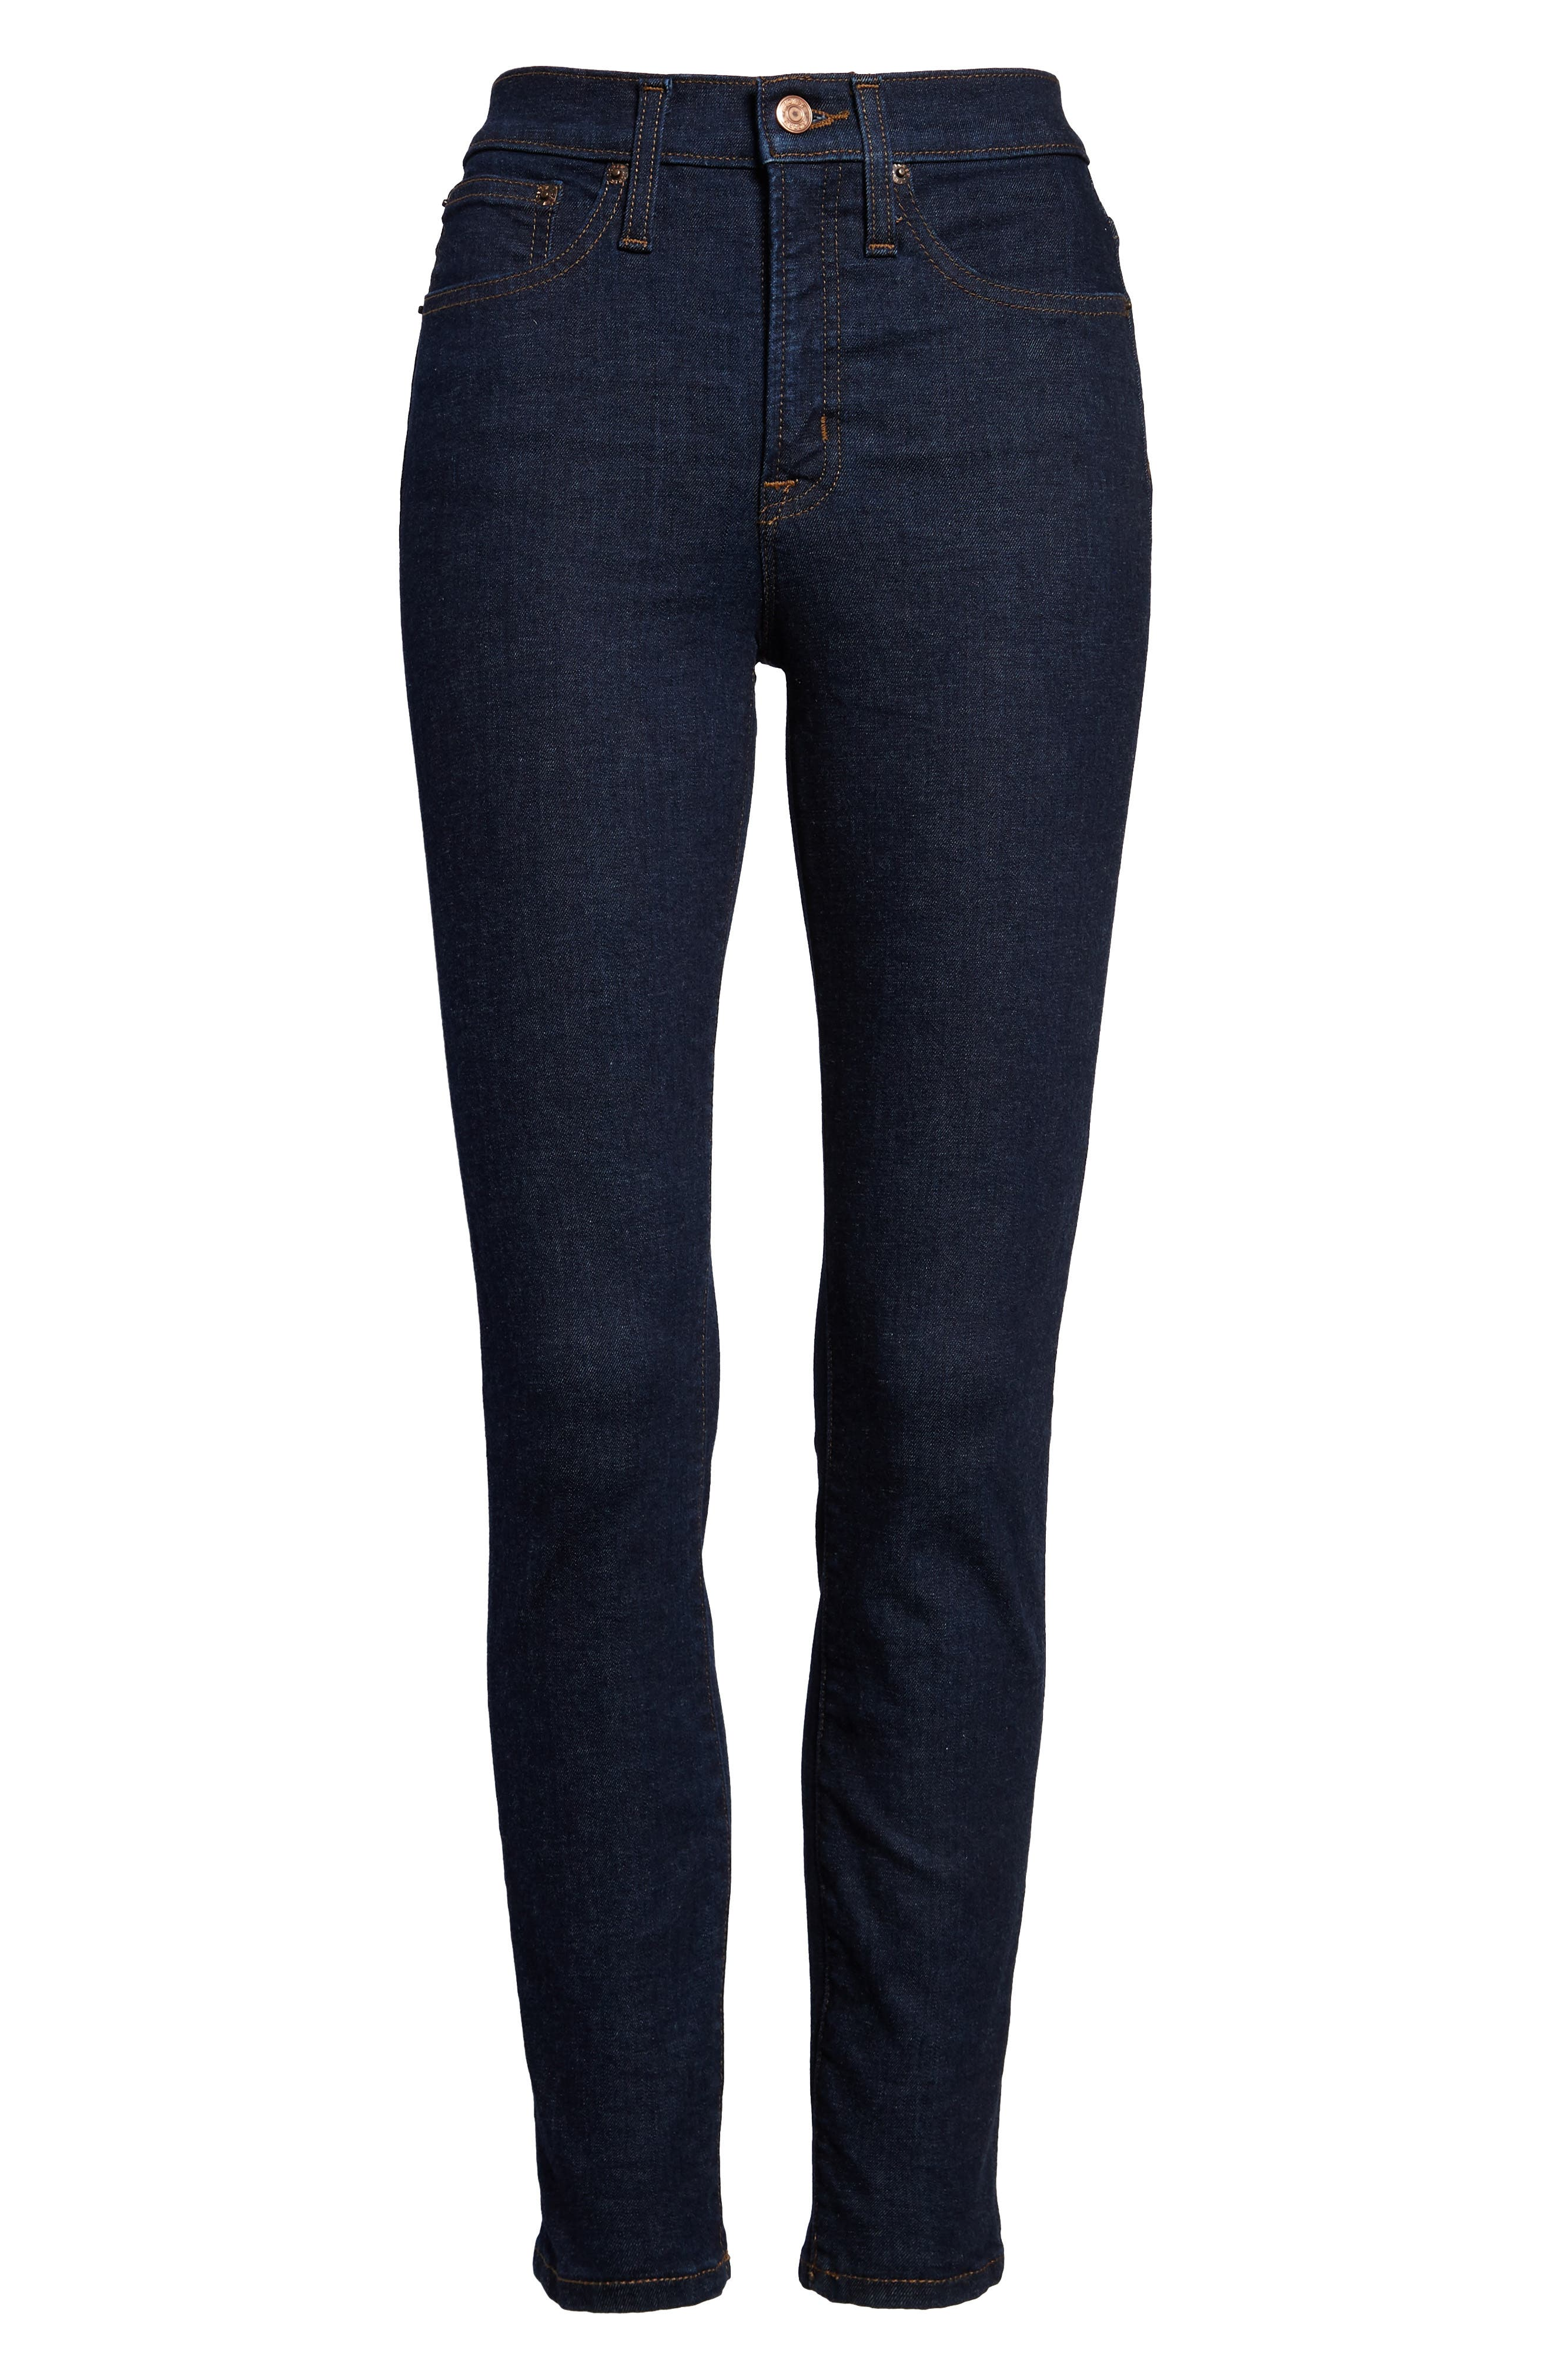 Toothpick High Rise Jeans,                             Alternate thumbnail 3, color,                             409